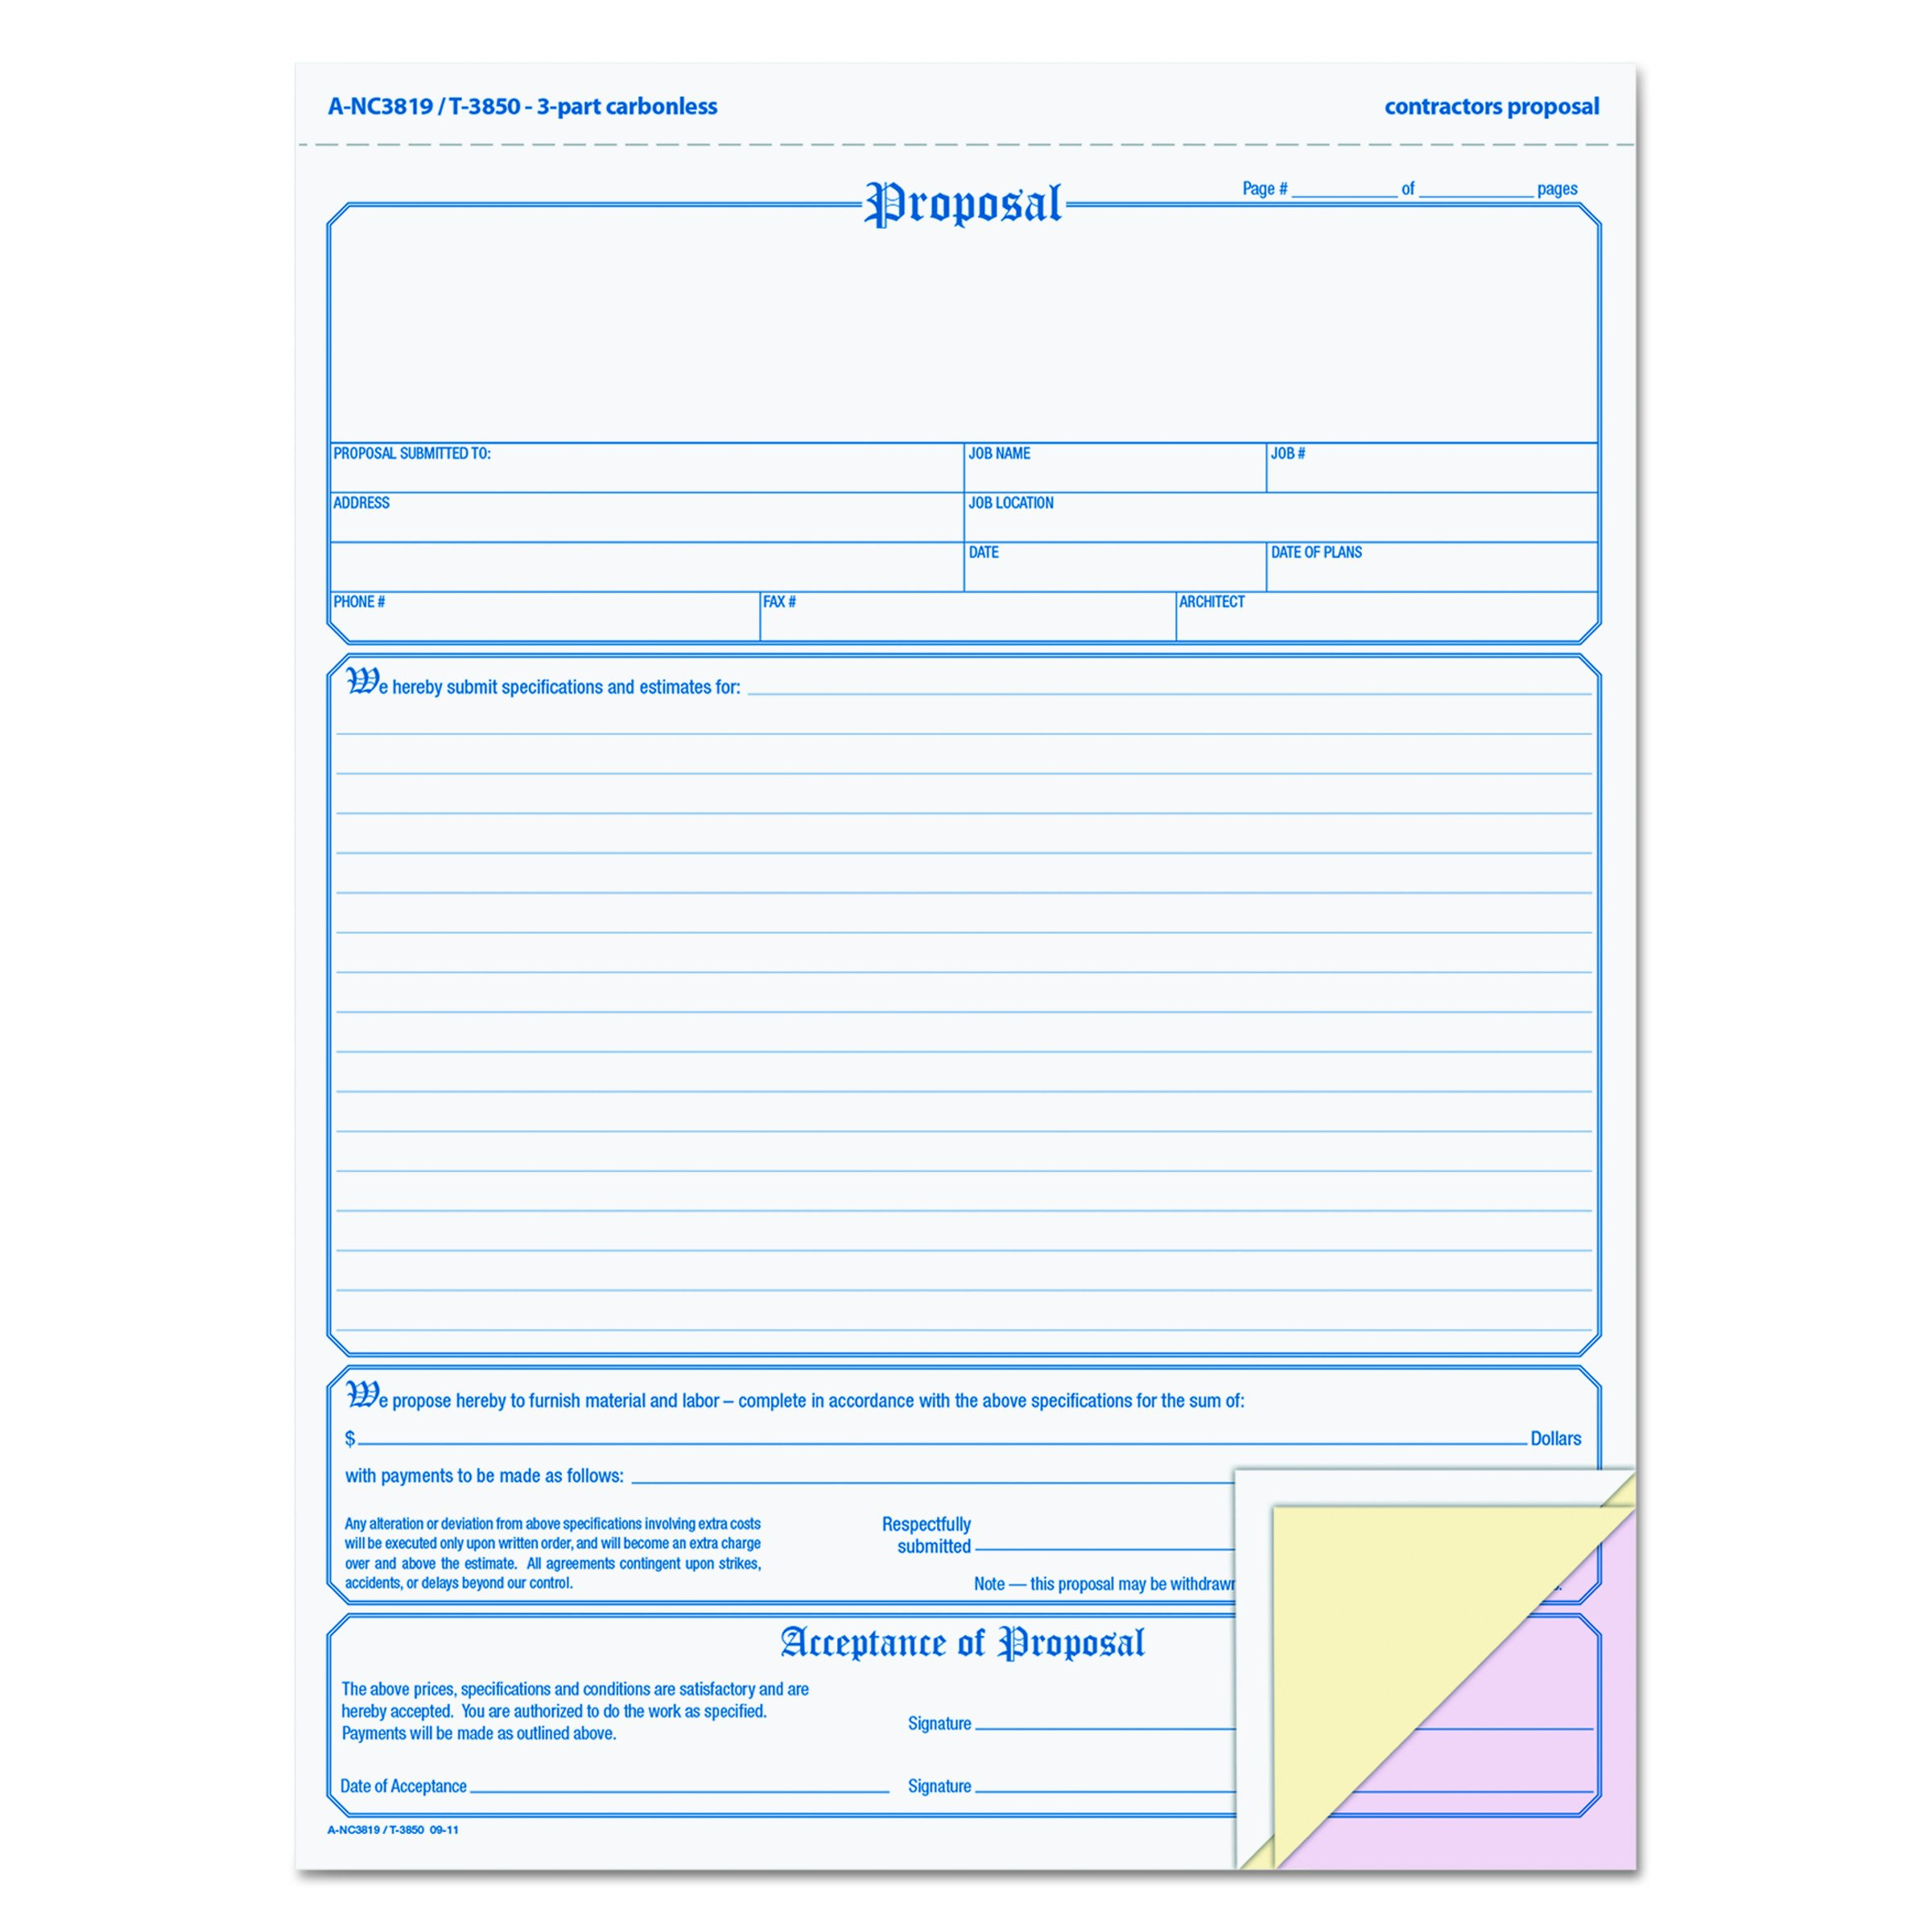 TOPS Proposal Form, 3-Part, Carbonless, 8.5 x 11 Inches, Phantom Rule, 50 Sets per Pack (3850)